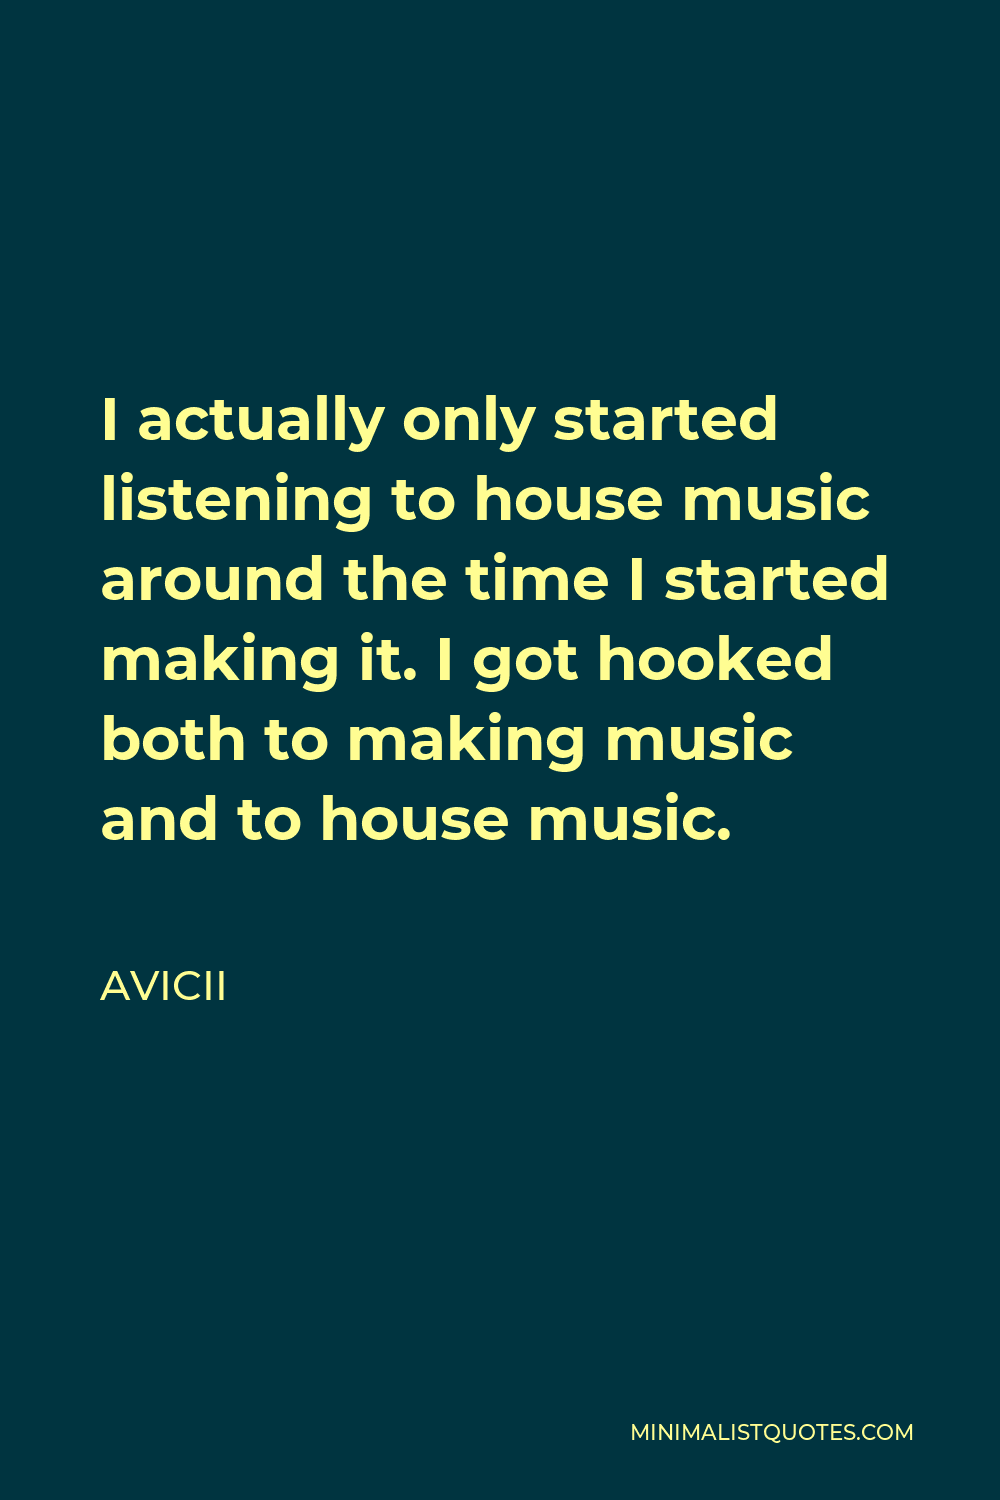 Avicii Quote - I actually only started listening to house music around the time I started making it. I got hooked both to making music and to house music.